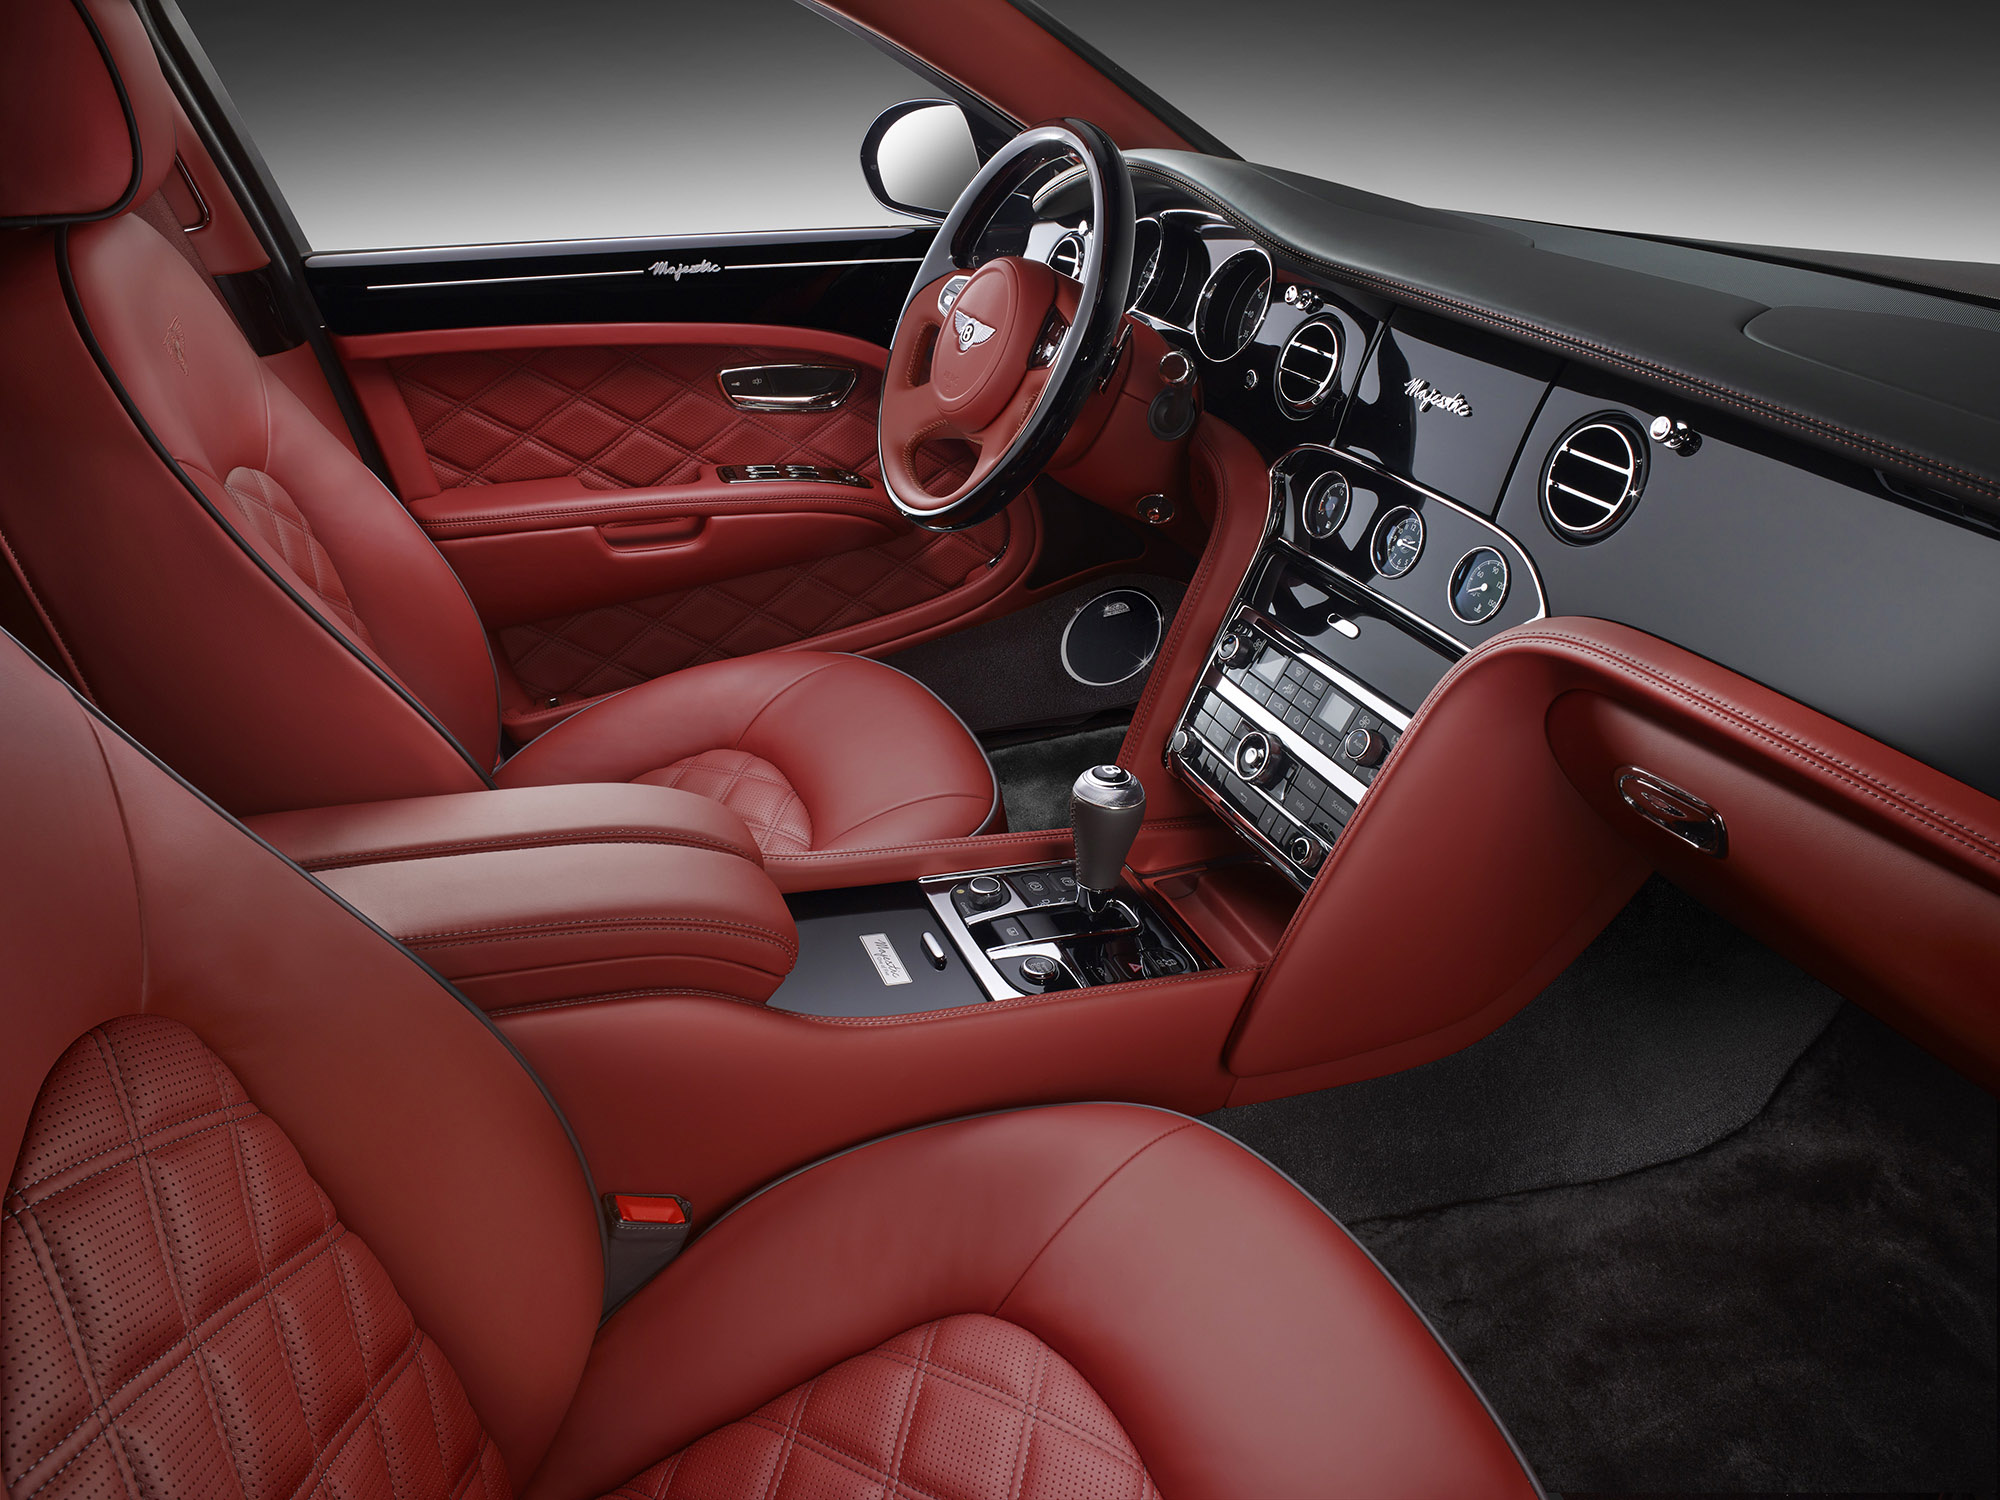 Bentley mulsanne majestic limited edition launched in the middle east vanachro Image collections